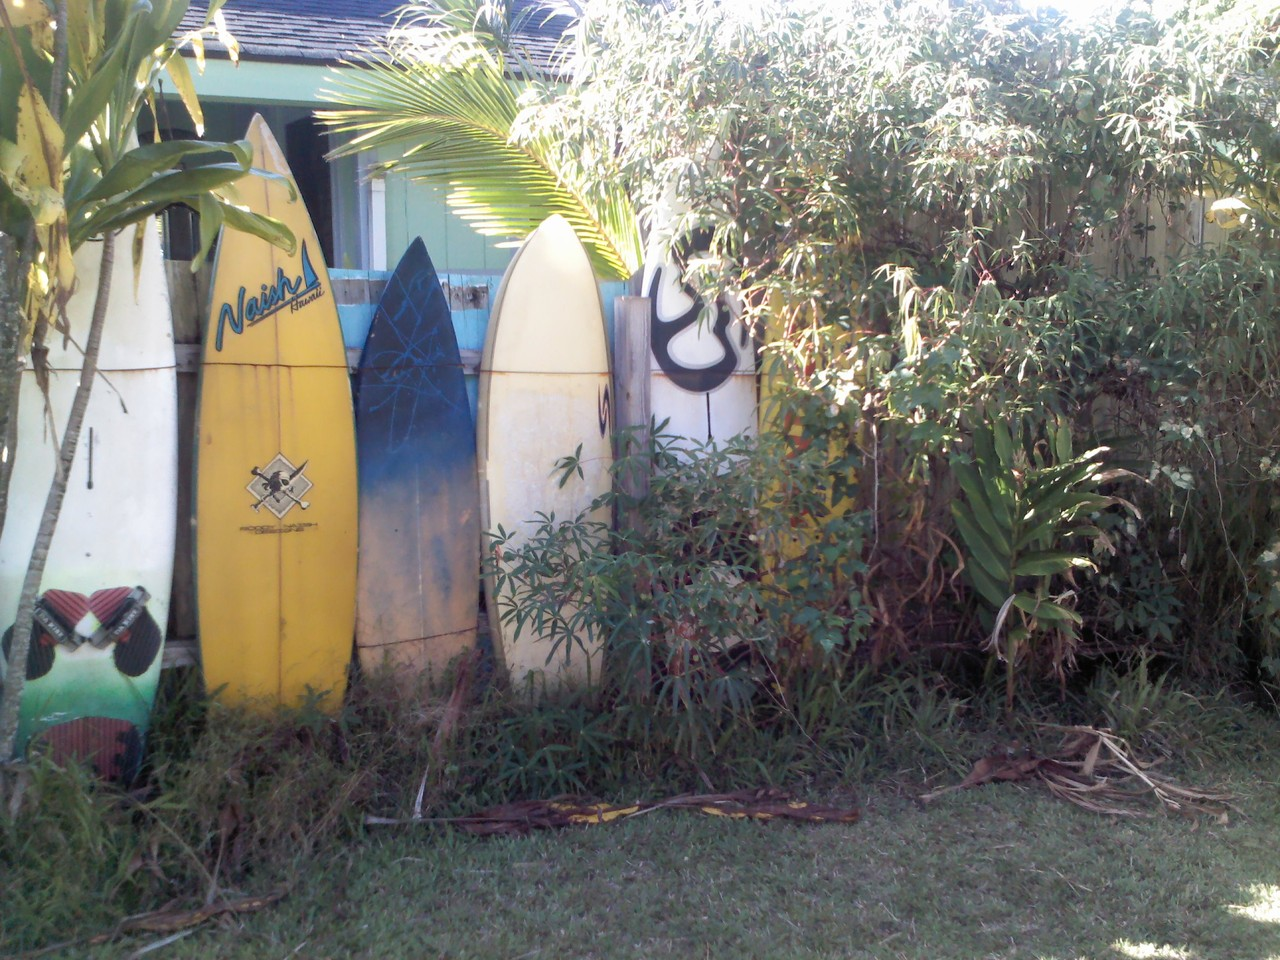 Our back garden has a Sailboardstarifa on the fence :D:D